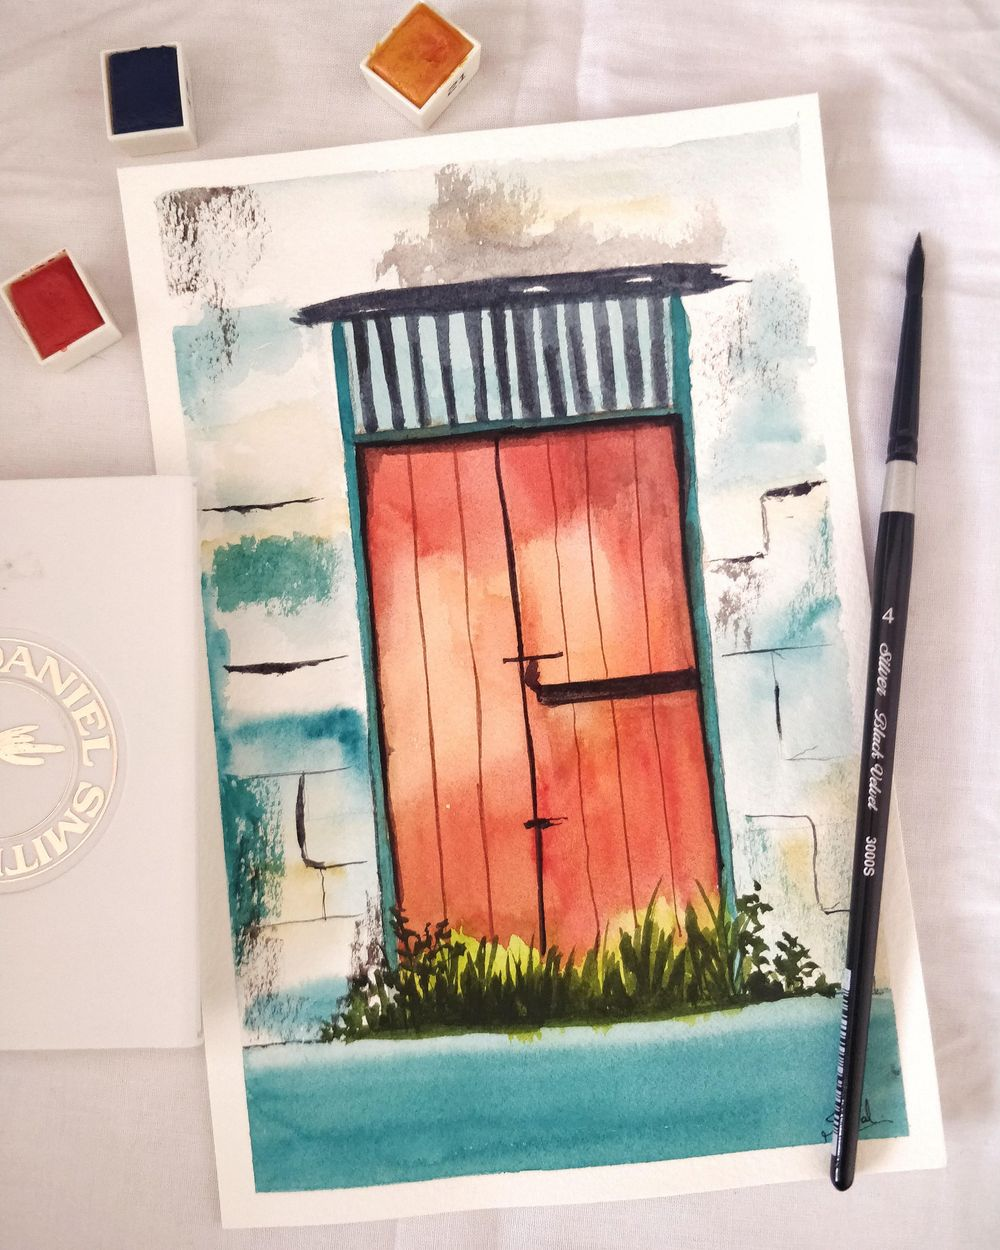 Behind every door is an opportunity! - image 2 - student project